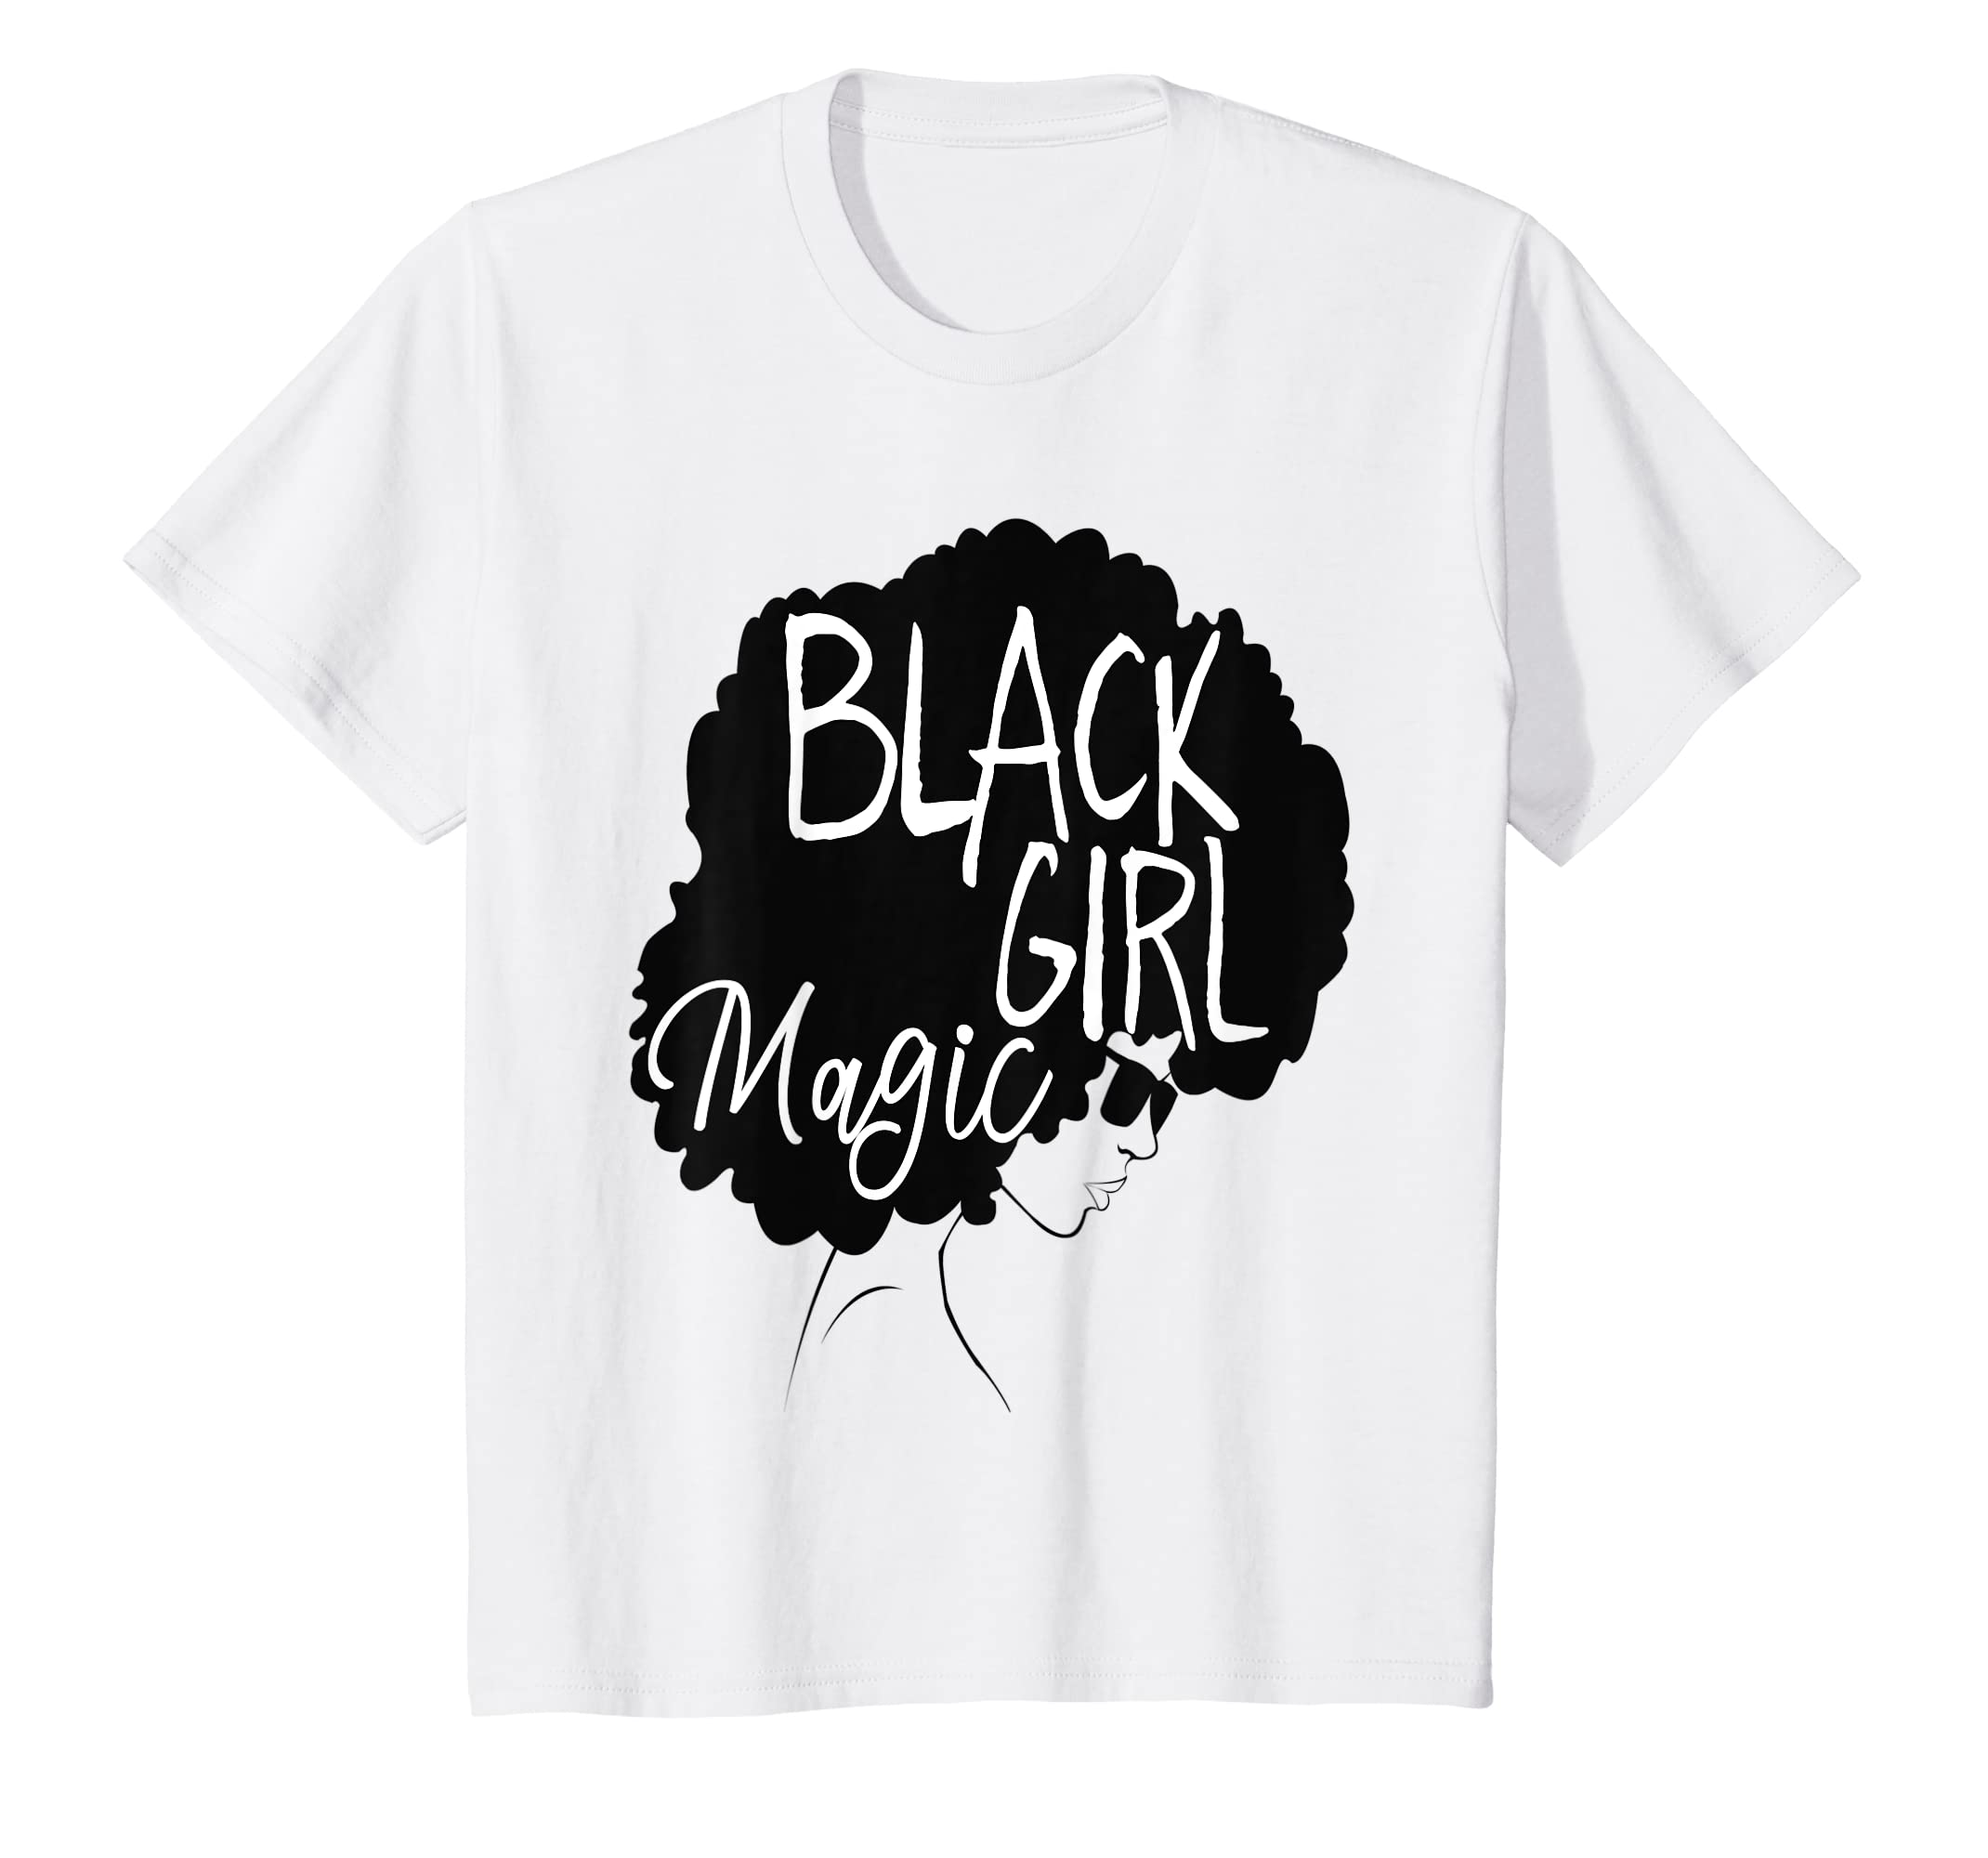 7af995235 Amazon.com: Black Girl Magic Shirt Afro Diva African American Woman:  Clothing